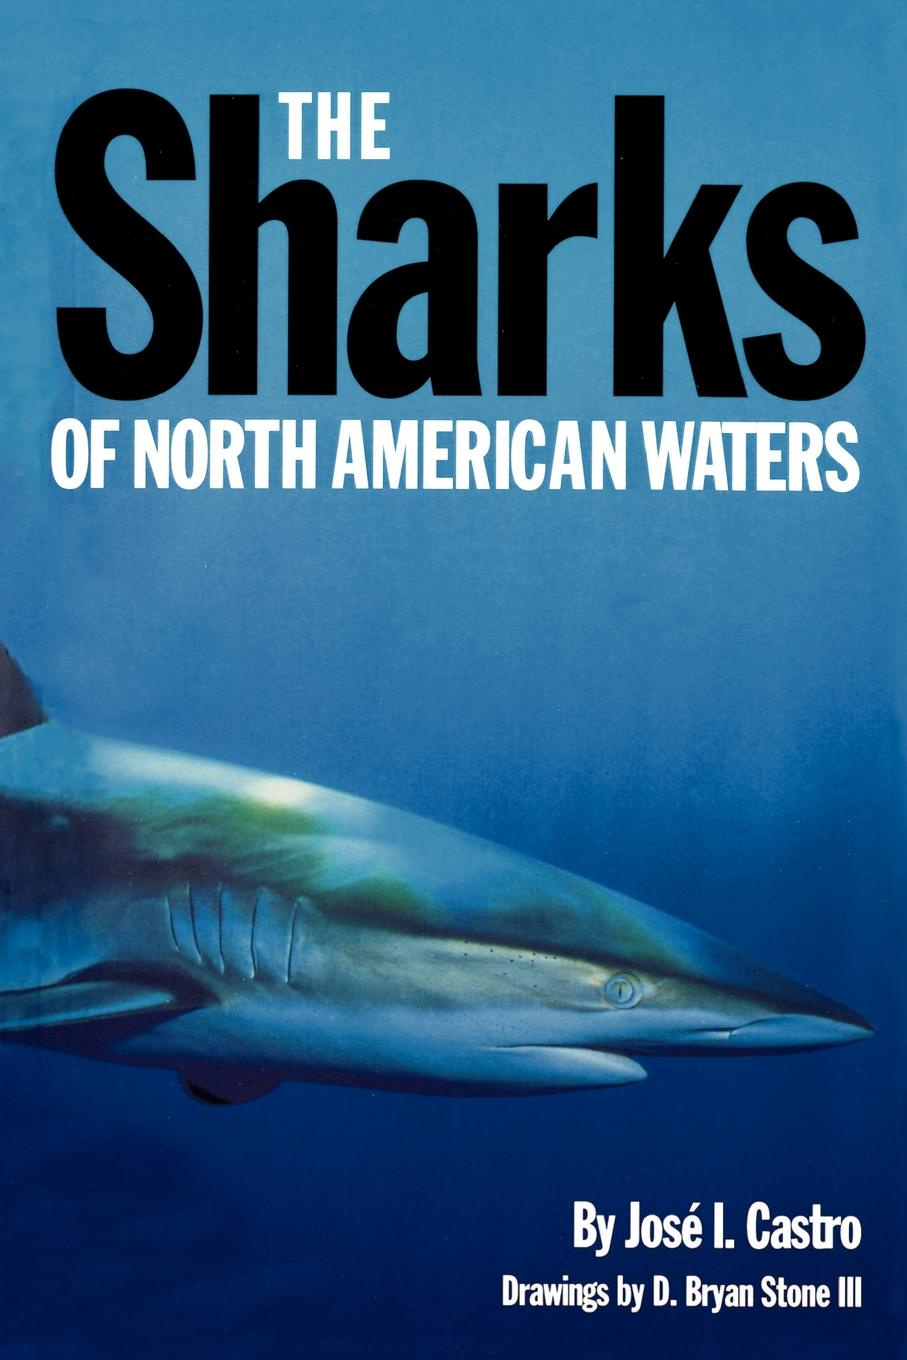 Jose I. Castro The Sharks of North American Waters